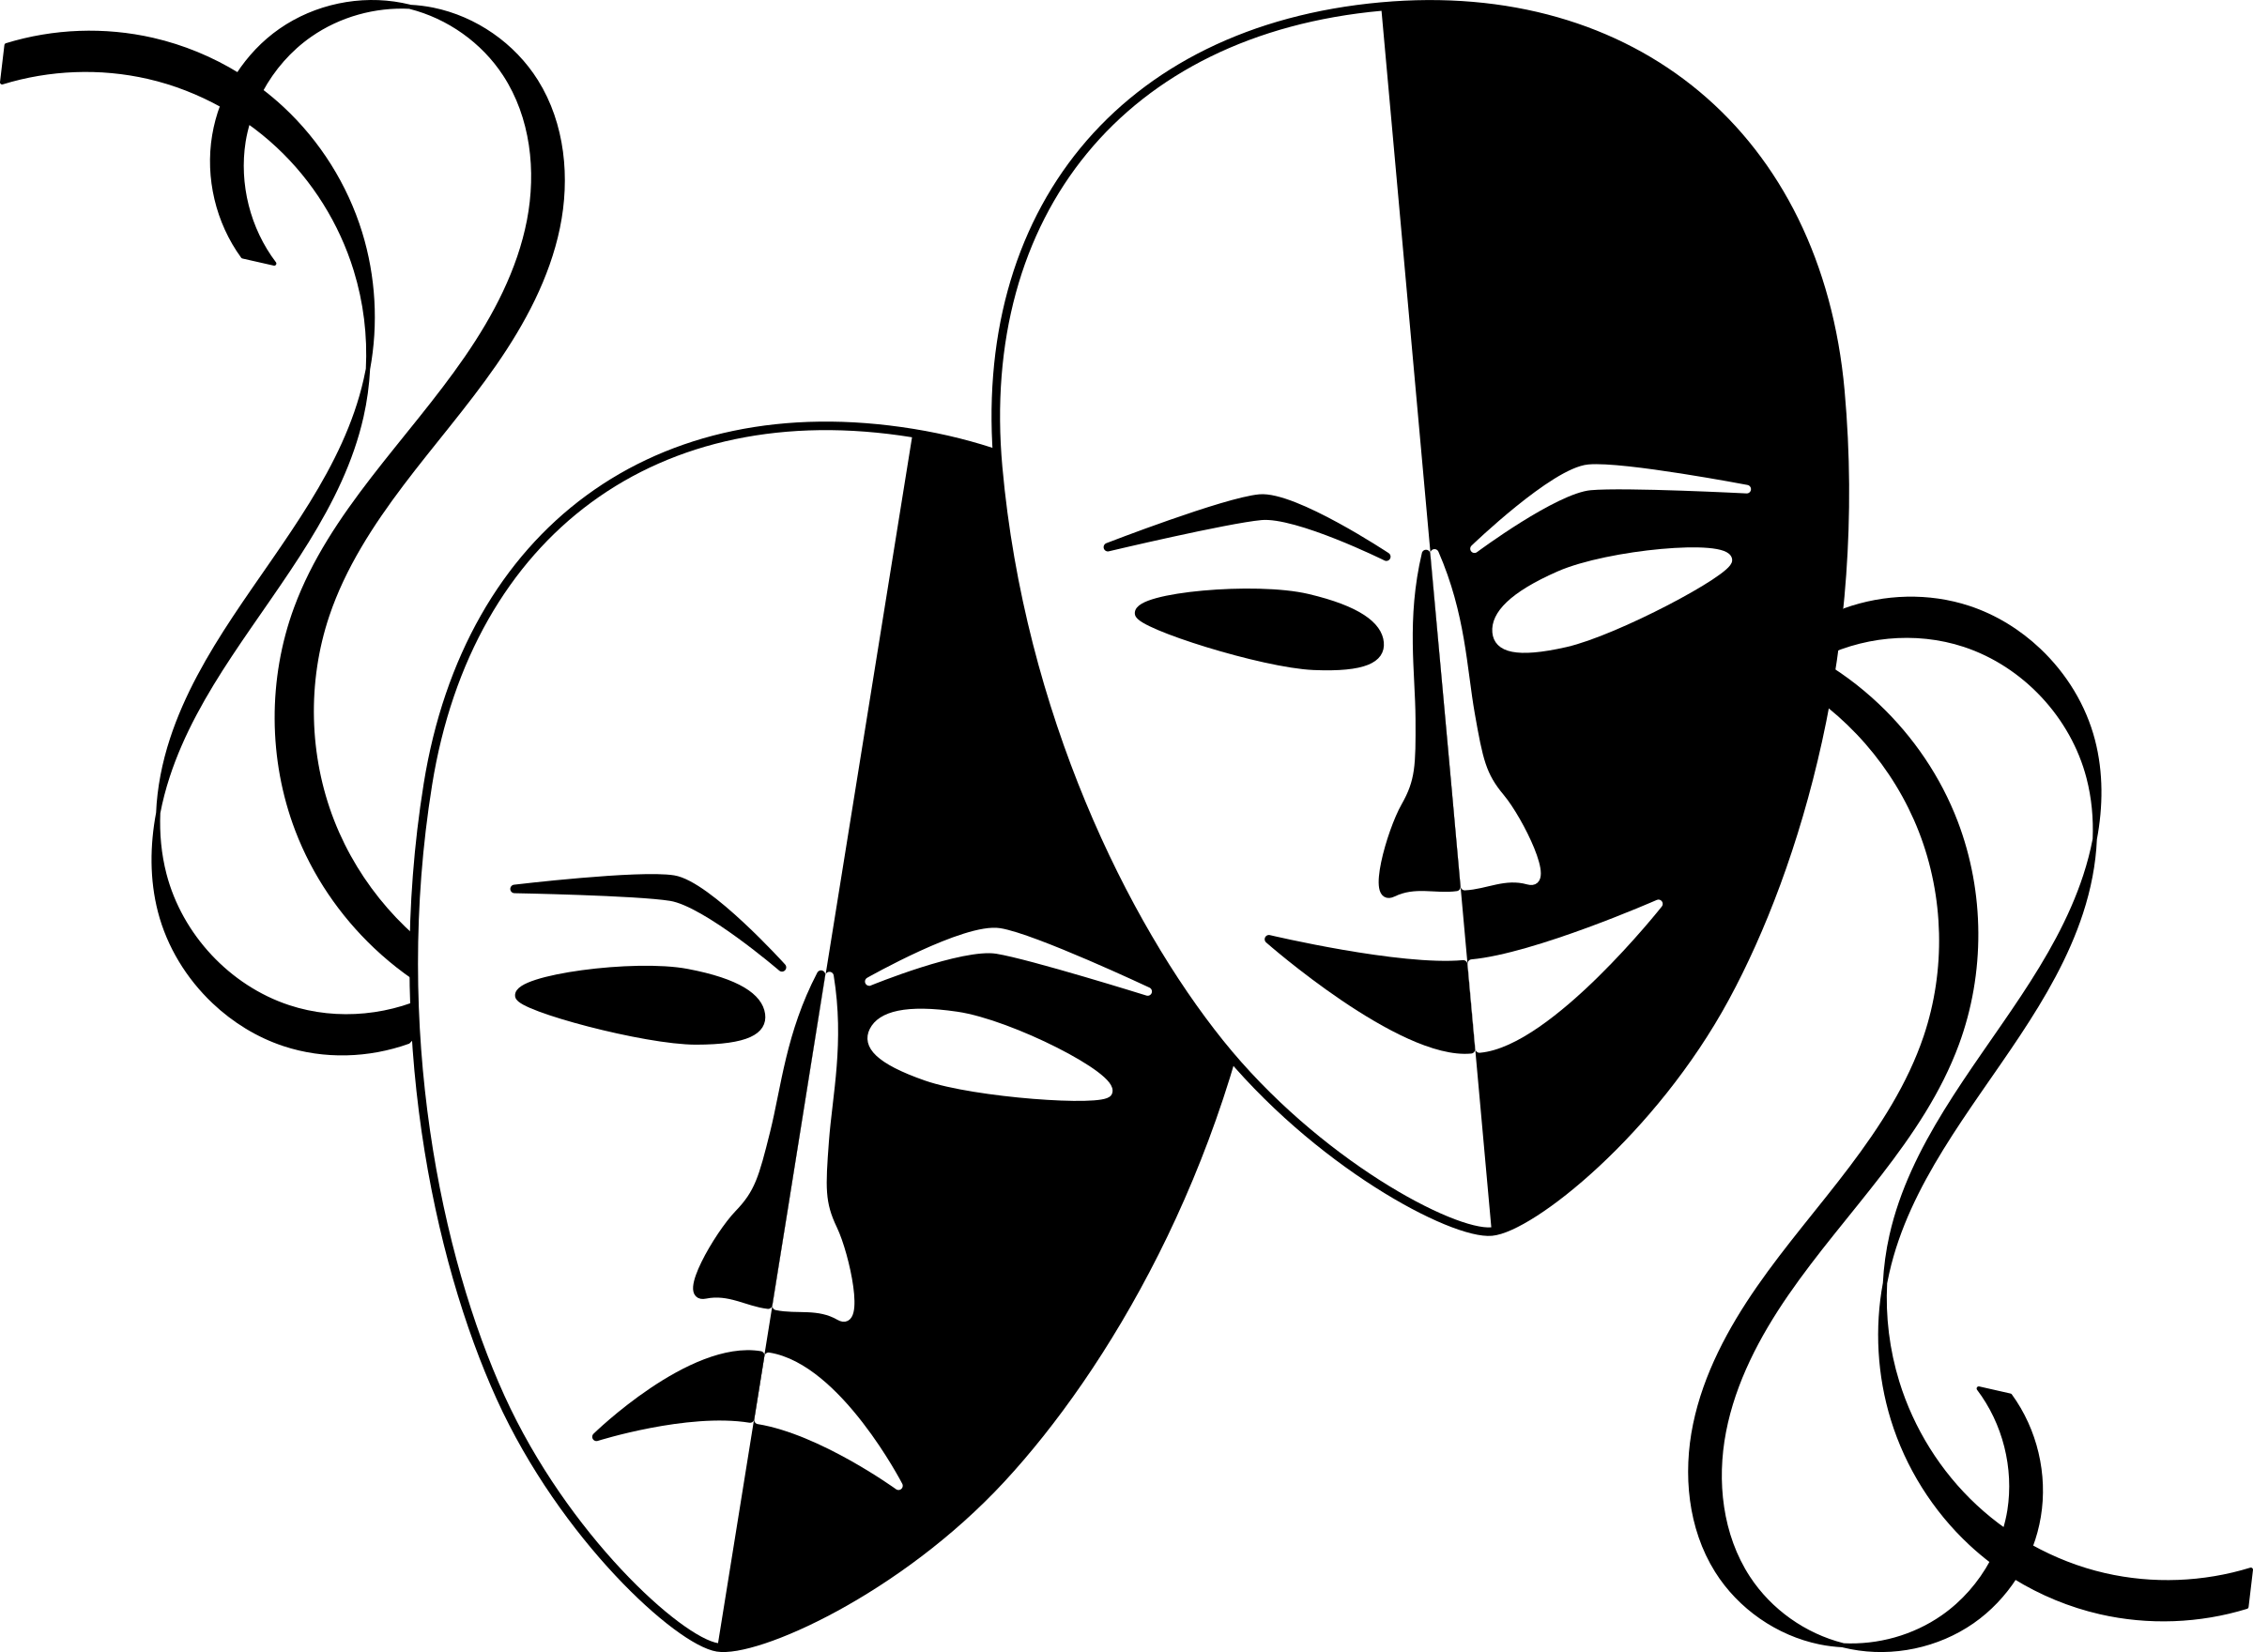 Theatre masks icons free. Theater mask png svg stock